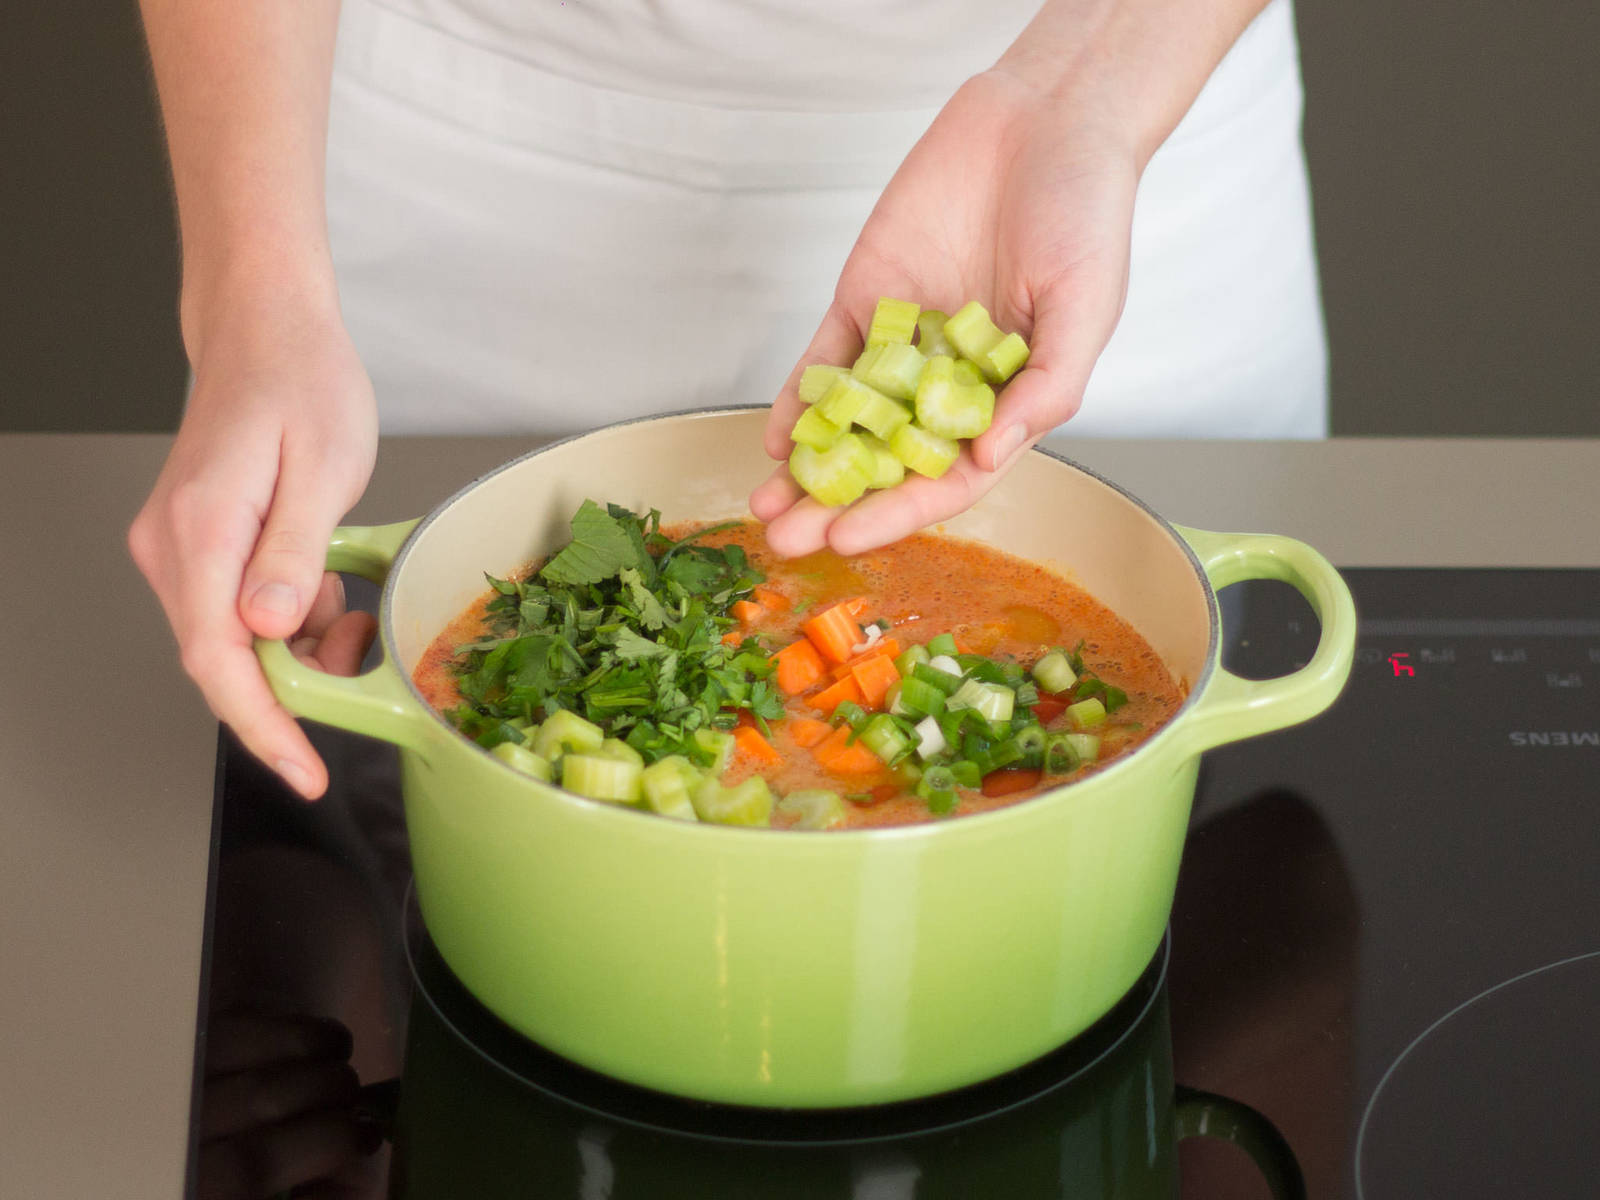 Add tomatoes, carrots, green onions, red onions, cilantro, mint, and celery to soup. Season to taste with salt and pepper. Allow to simmer for approx. 3 – 5 min. until the vegetables are firm to the bite. Enjoy with a dollop of homemade crème fraîche or some soy yoghurt as a vegan option!